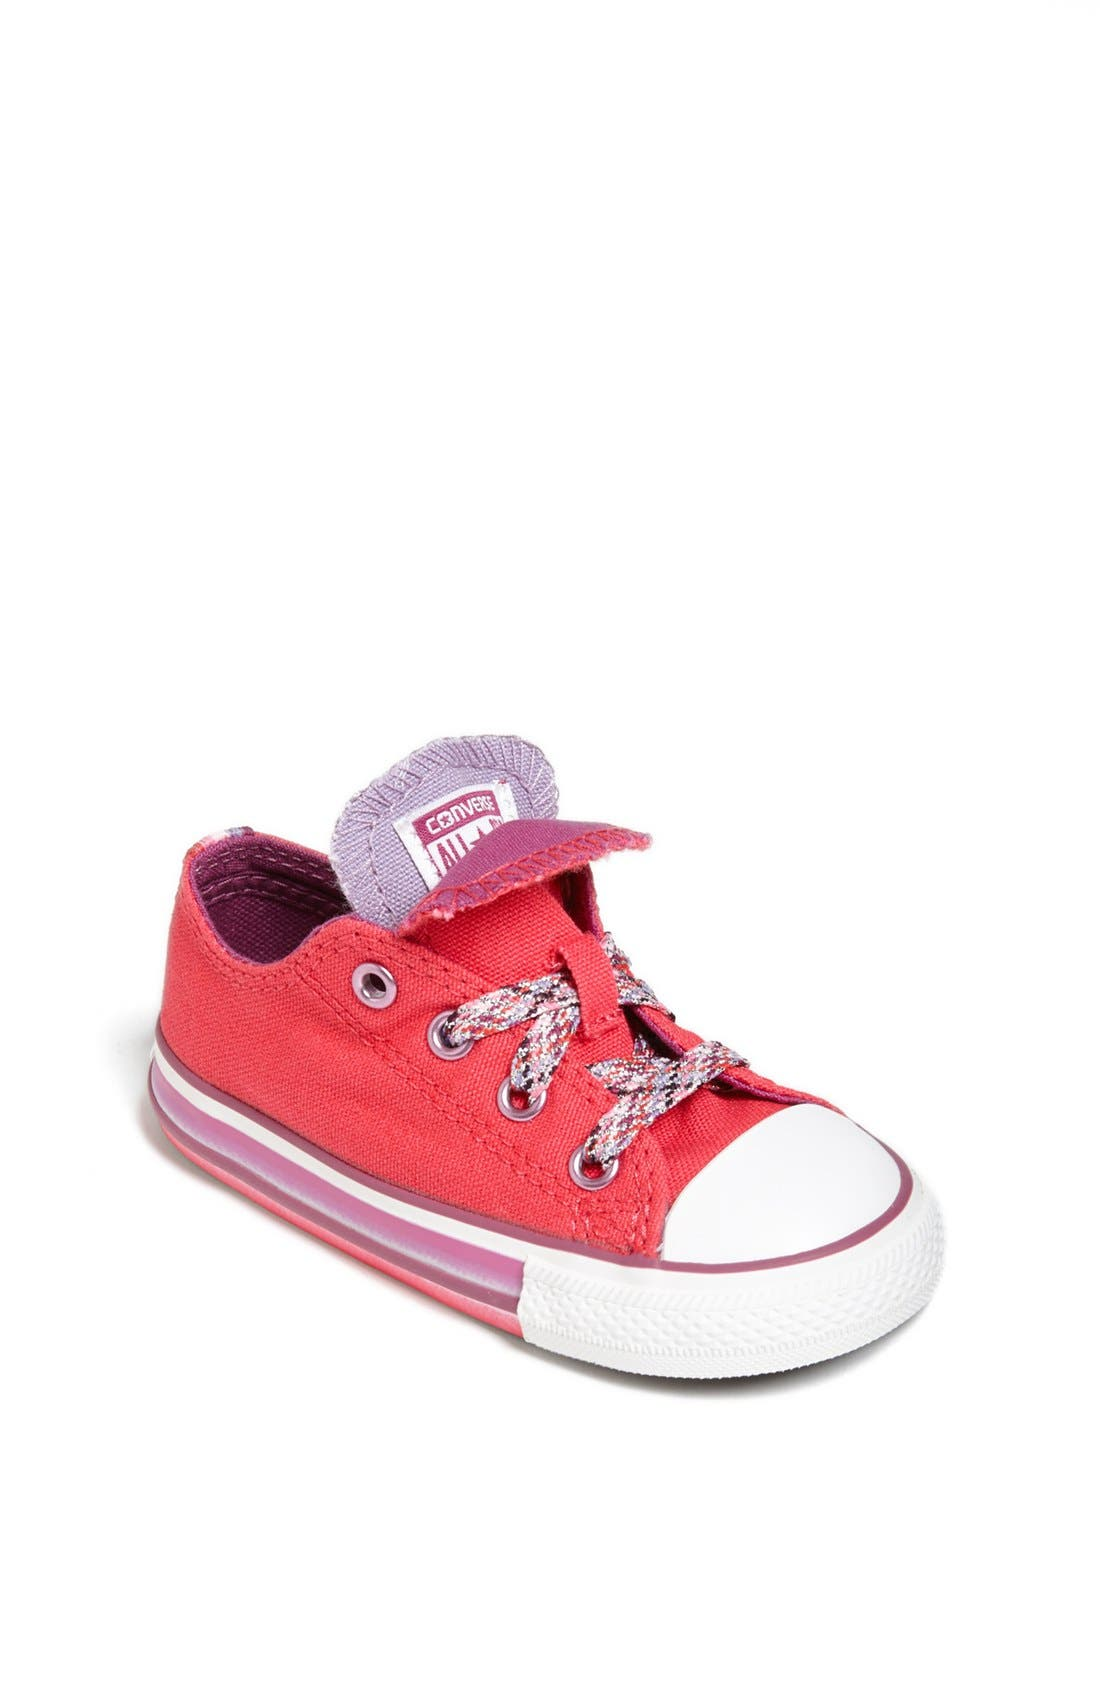 Alternate Image 1 Selected - Converse Double Tongue Sneaker (Baby, Walker & Toddler)